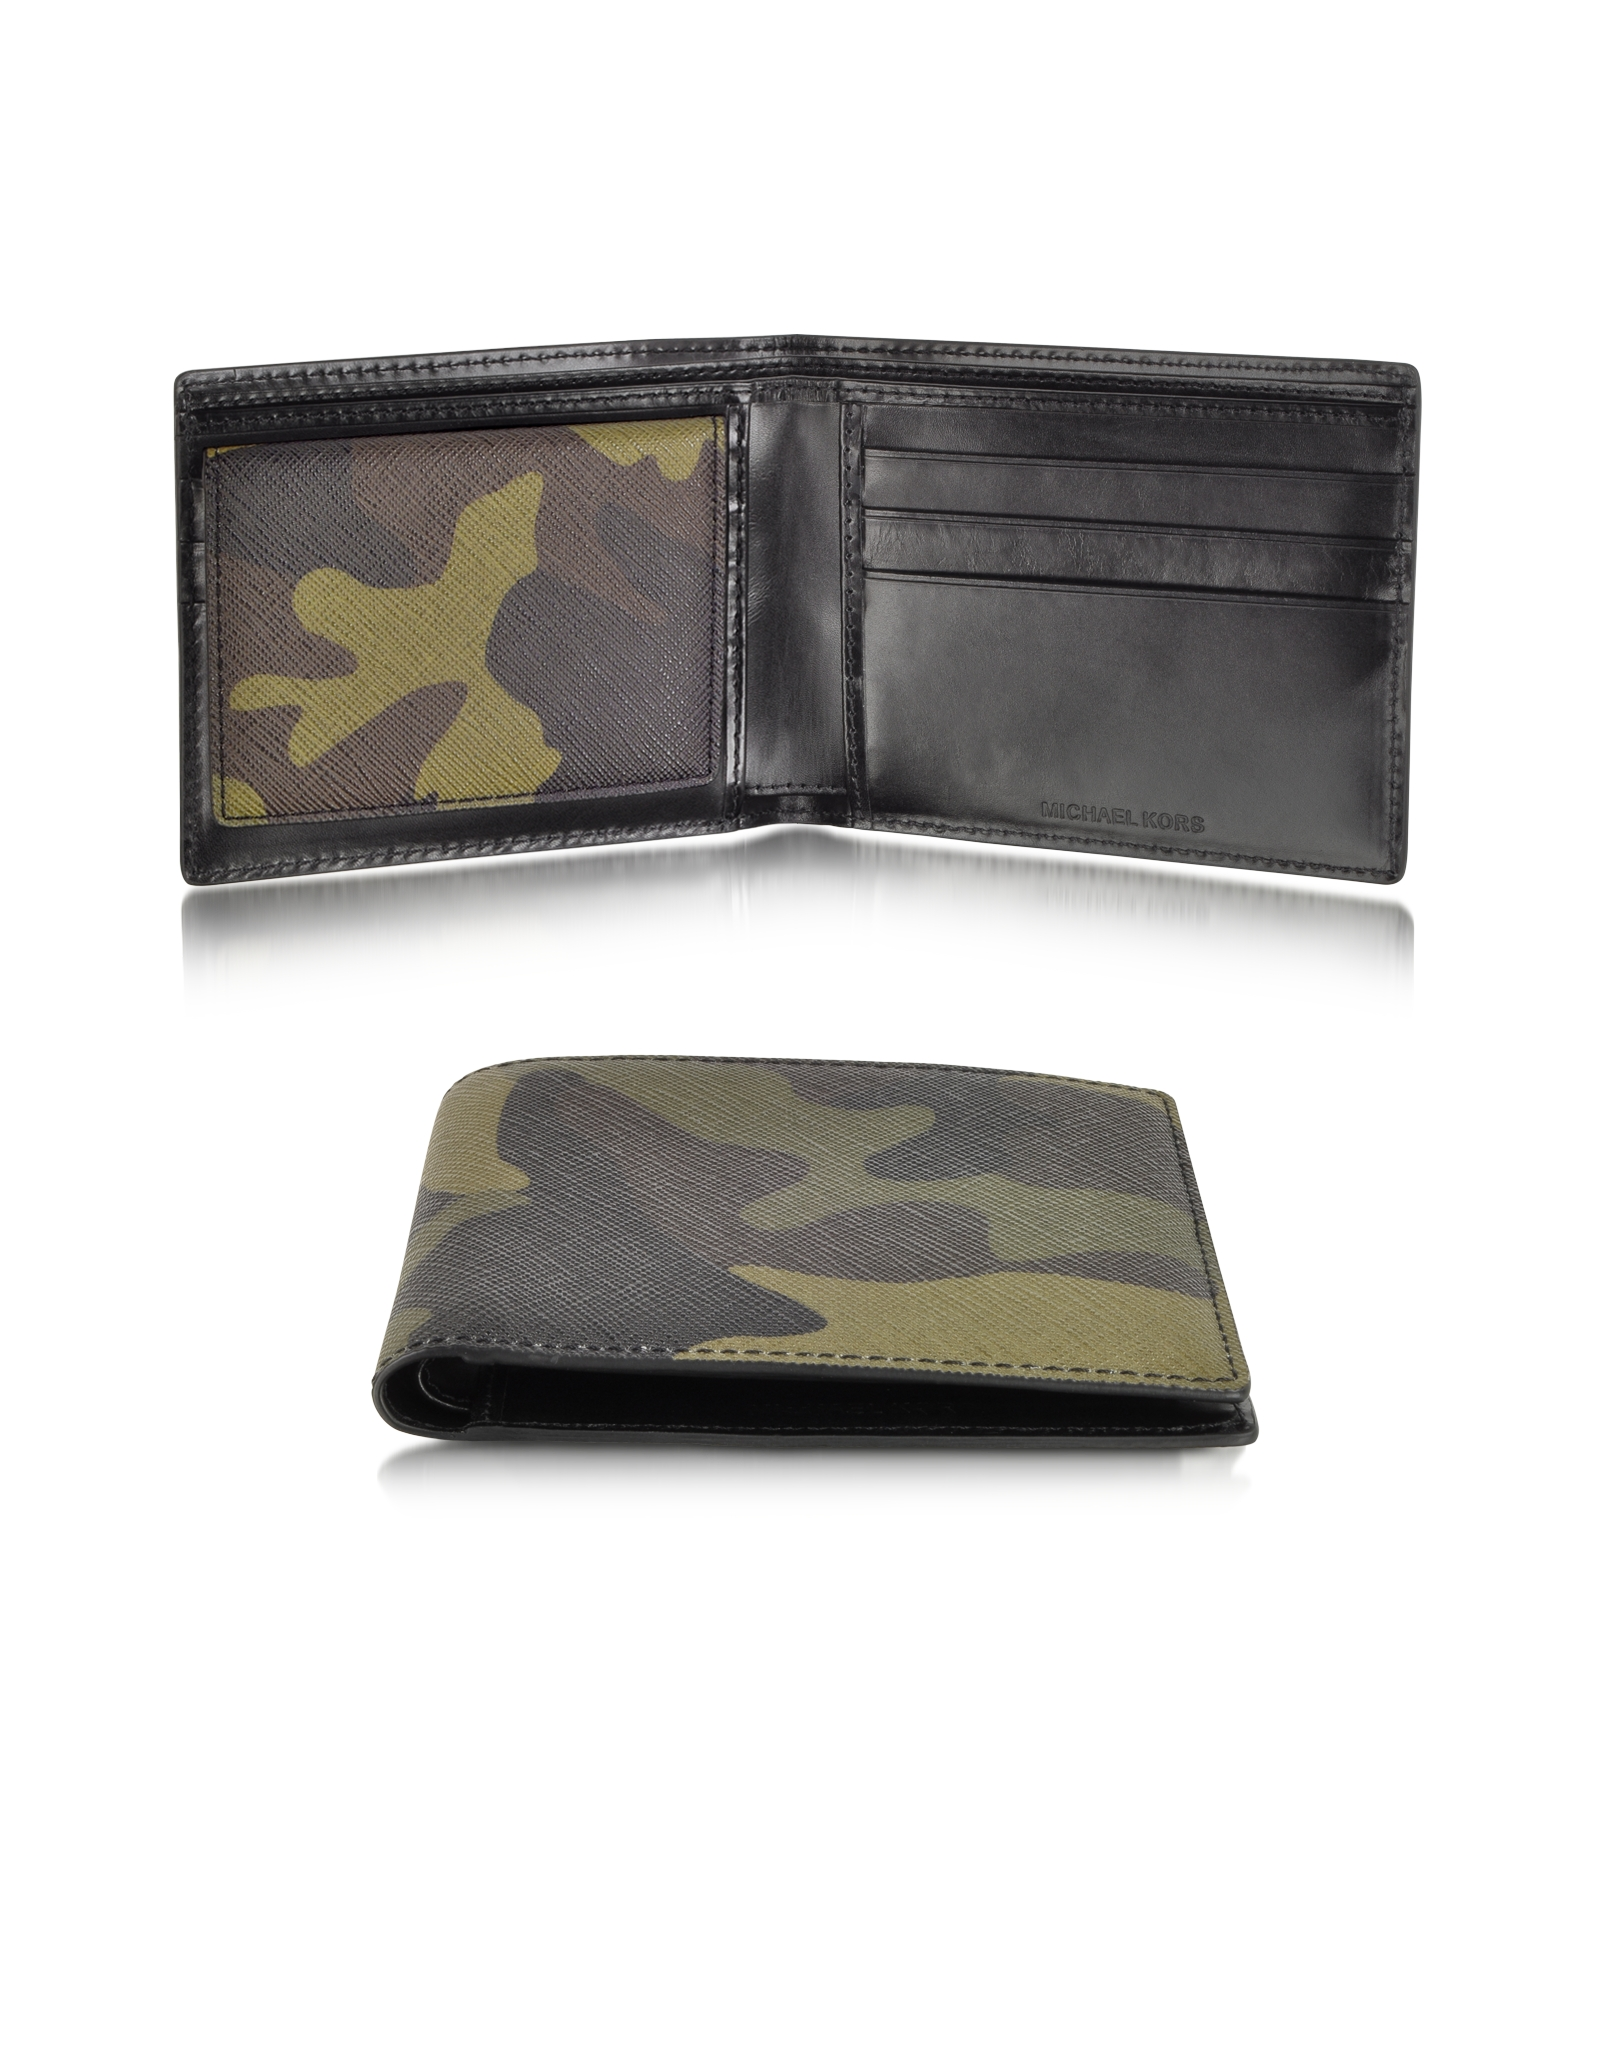 de2c8efae77b ... low price lyst michael kors leather bifold wallet in green for men  8c3d8 8a529